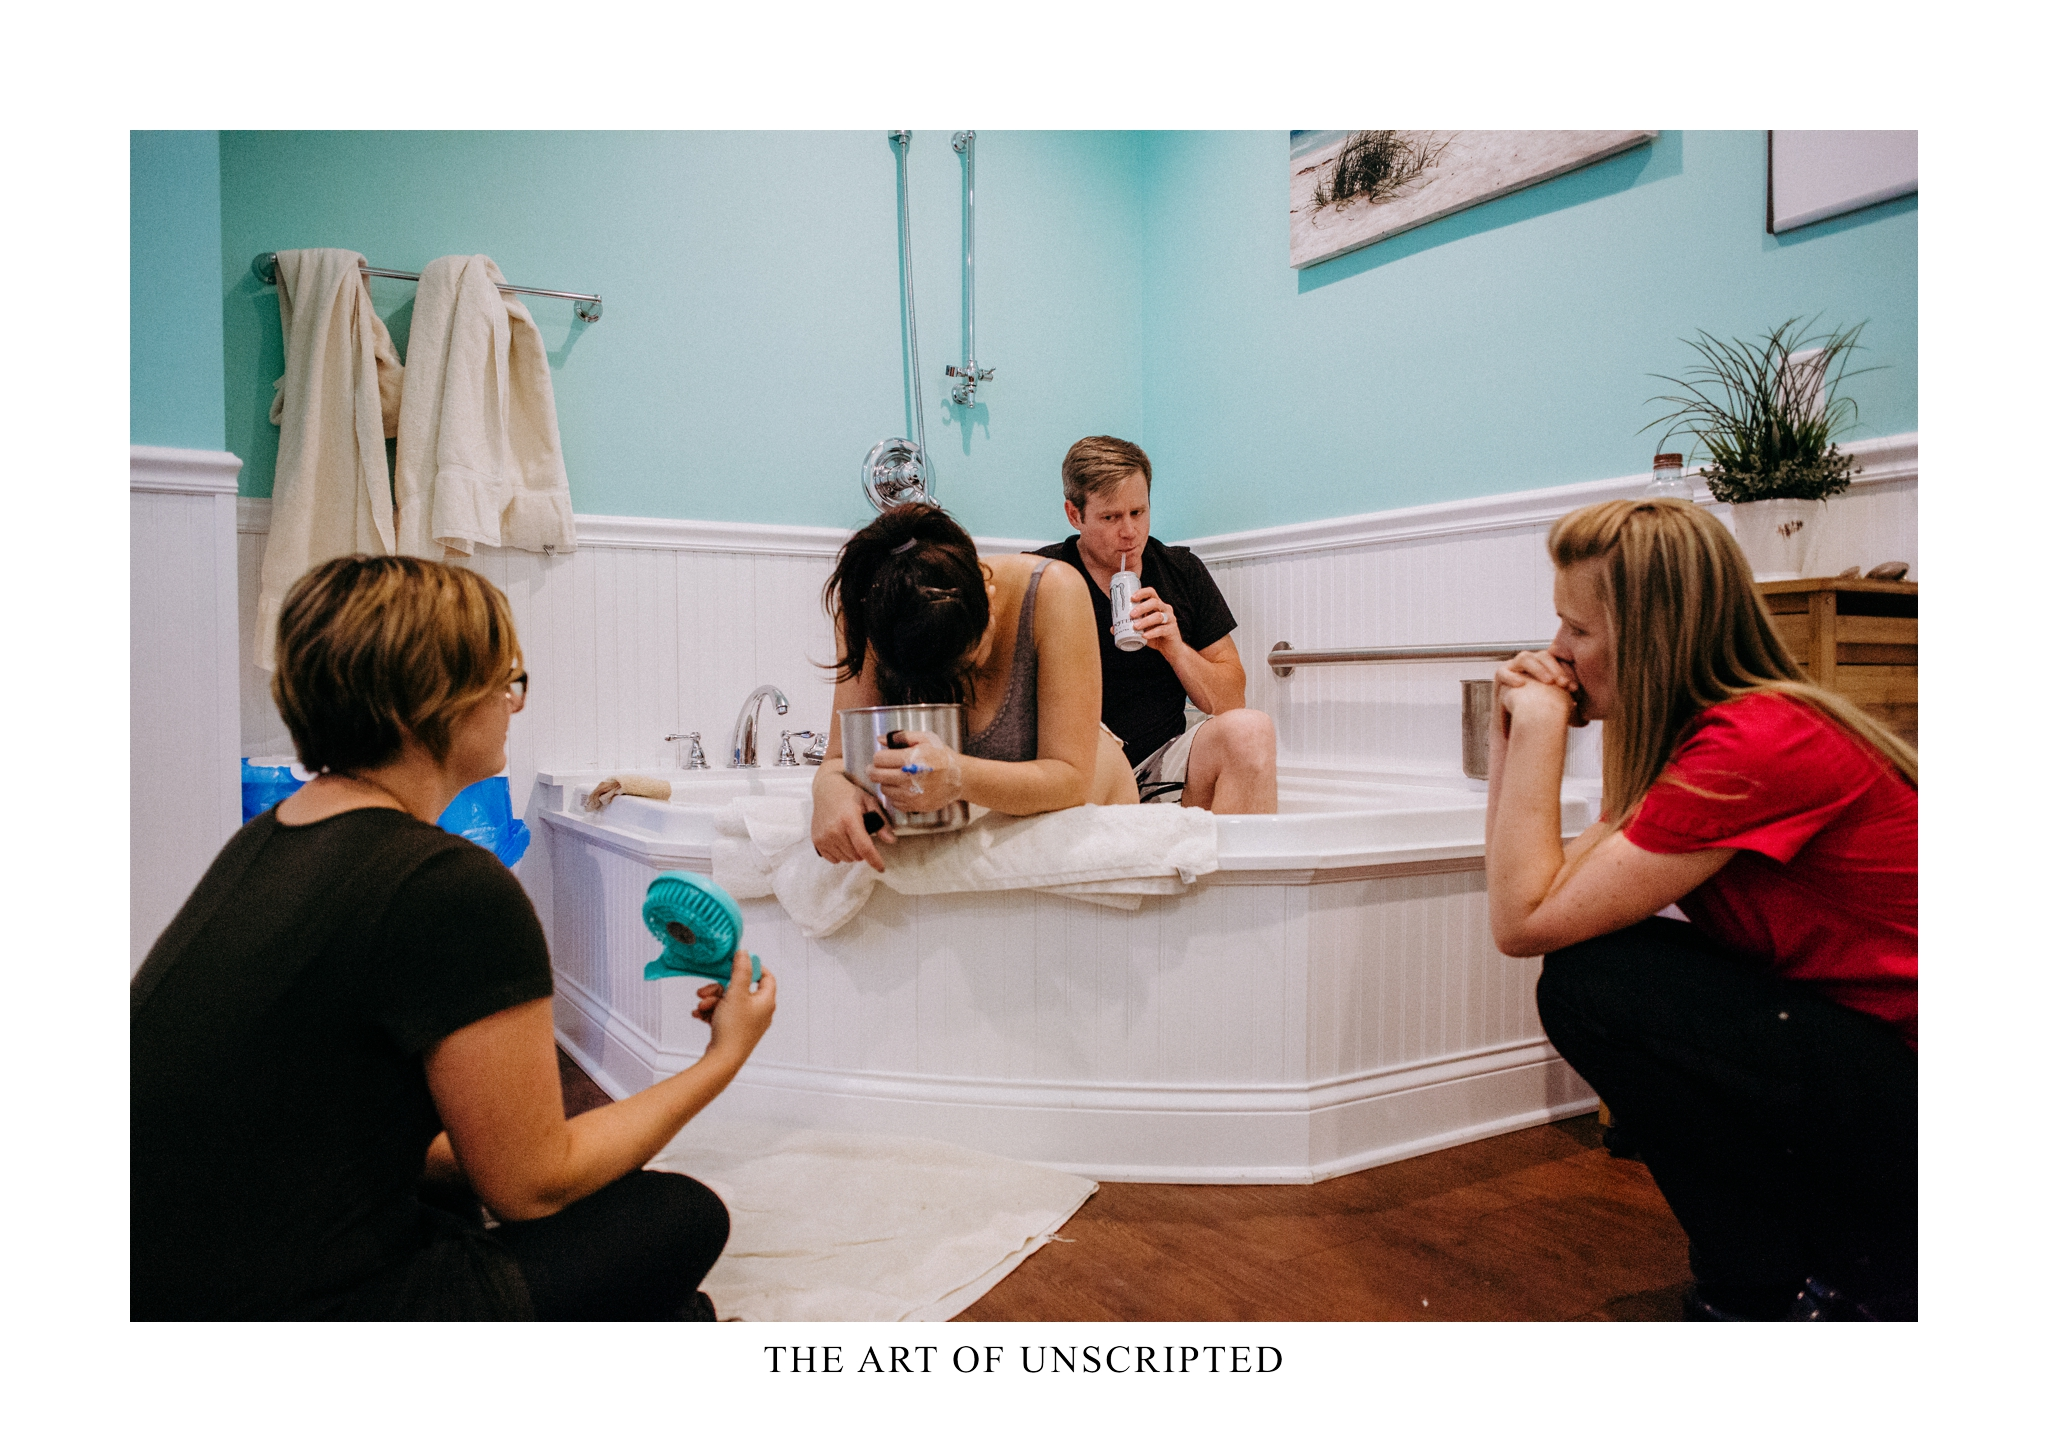 2017-06-10_195501__THE ART OF UNSCRIPTED_SPRINGFIELD MO_BIRTH PHOTOGRAPHER_ DOCUMENTARY_STORYTELLING_417_PHOTOGRAPHER